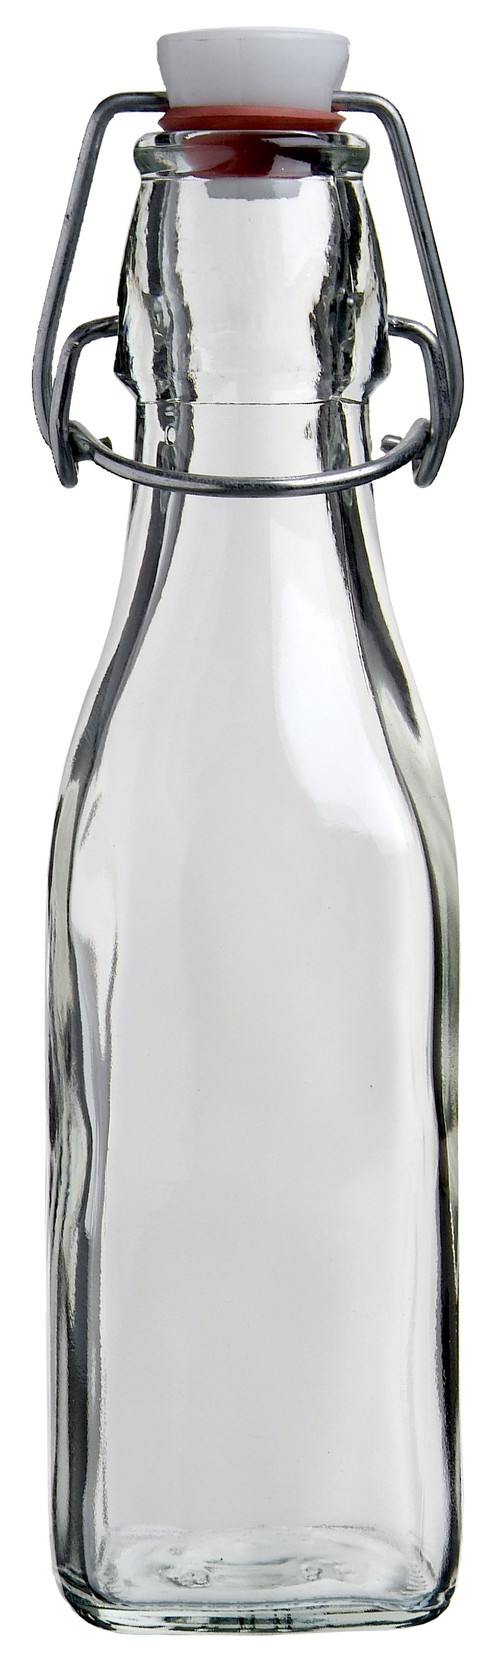 Bormioli Rocco Swing bottle 500ml with stopper,9462